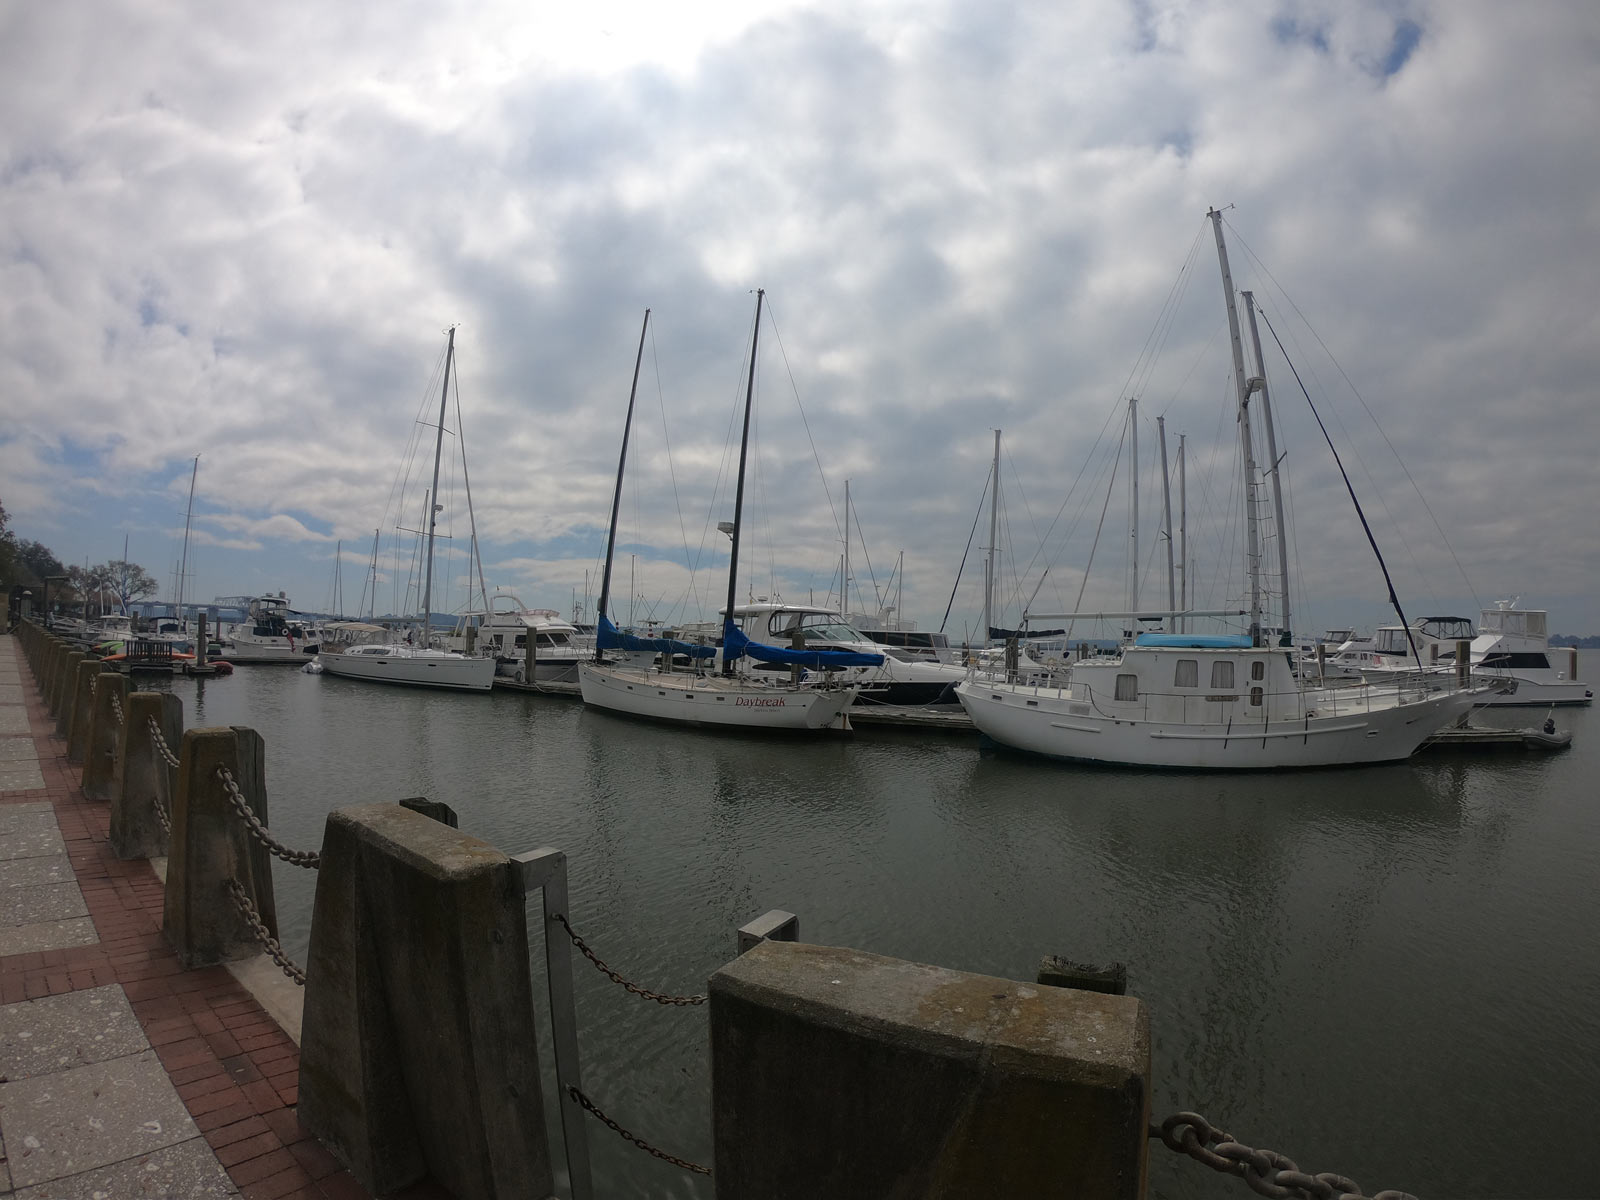 Beaufort waterfront with ships in the harbor under clouds